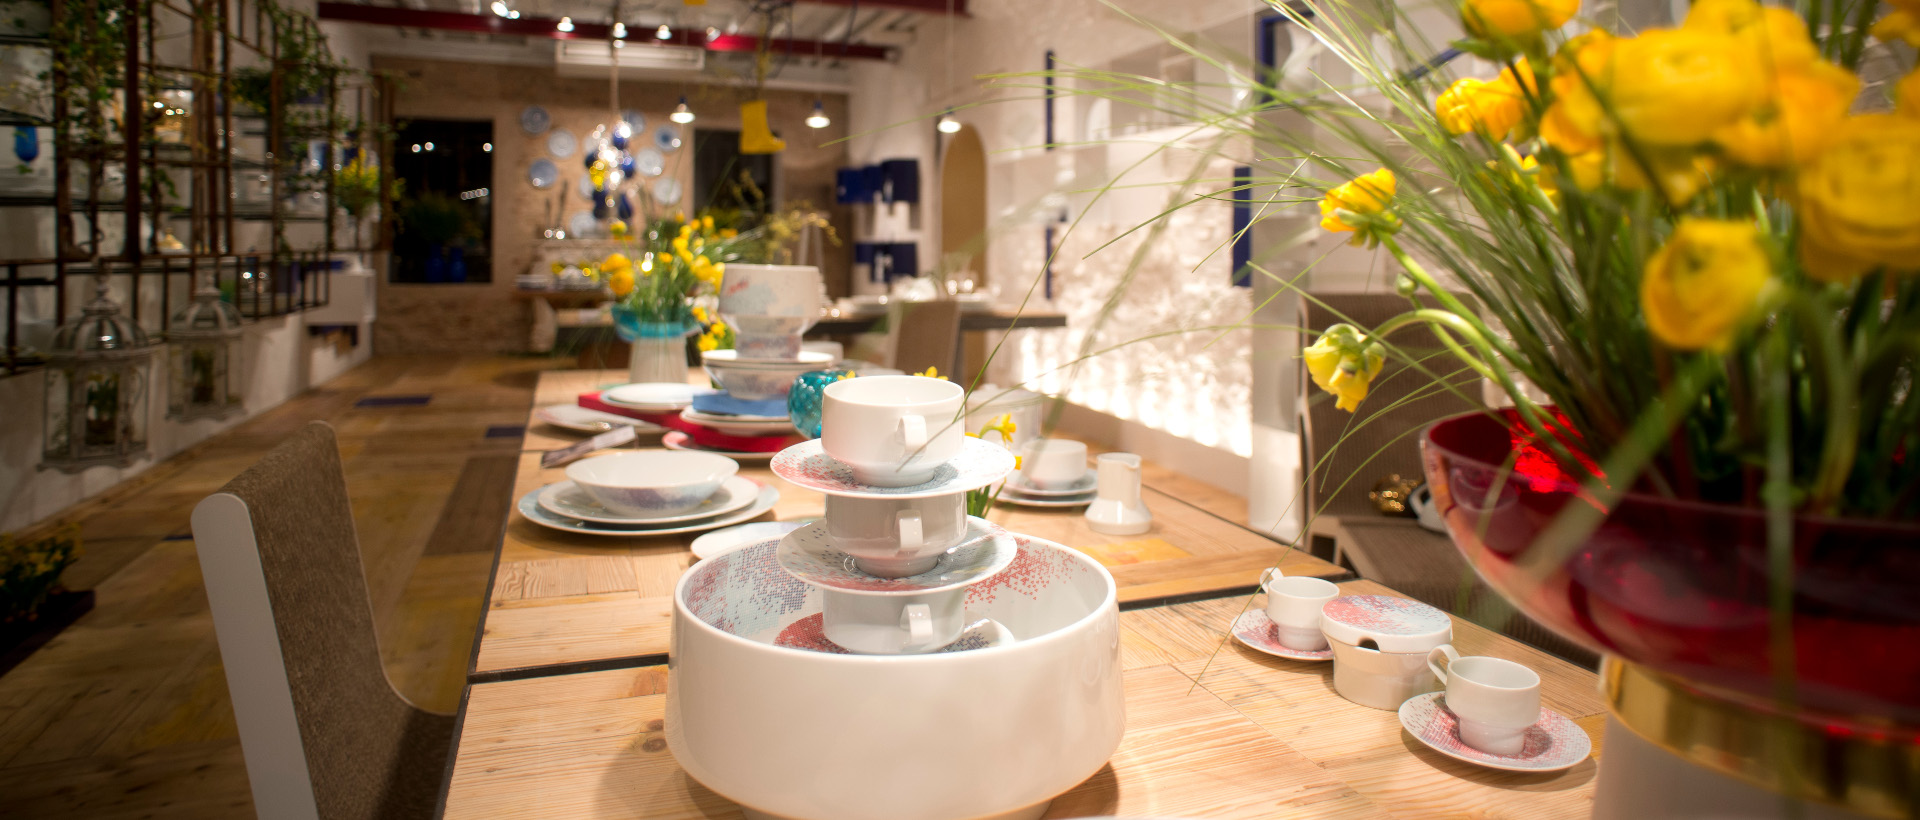 Morandin shop table set up with Rosenthal products